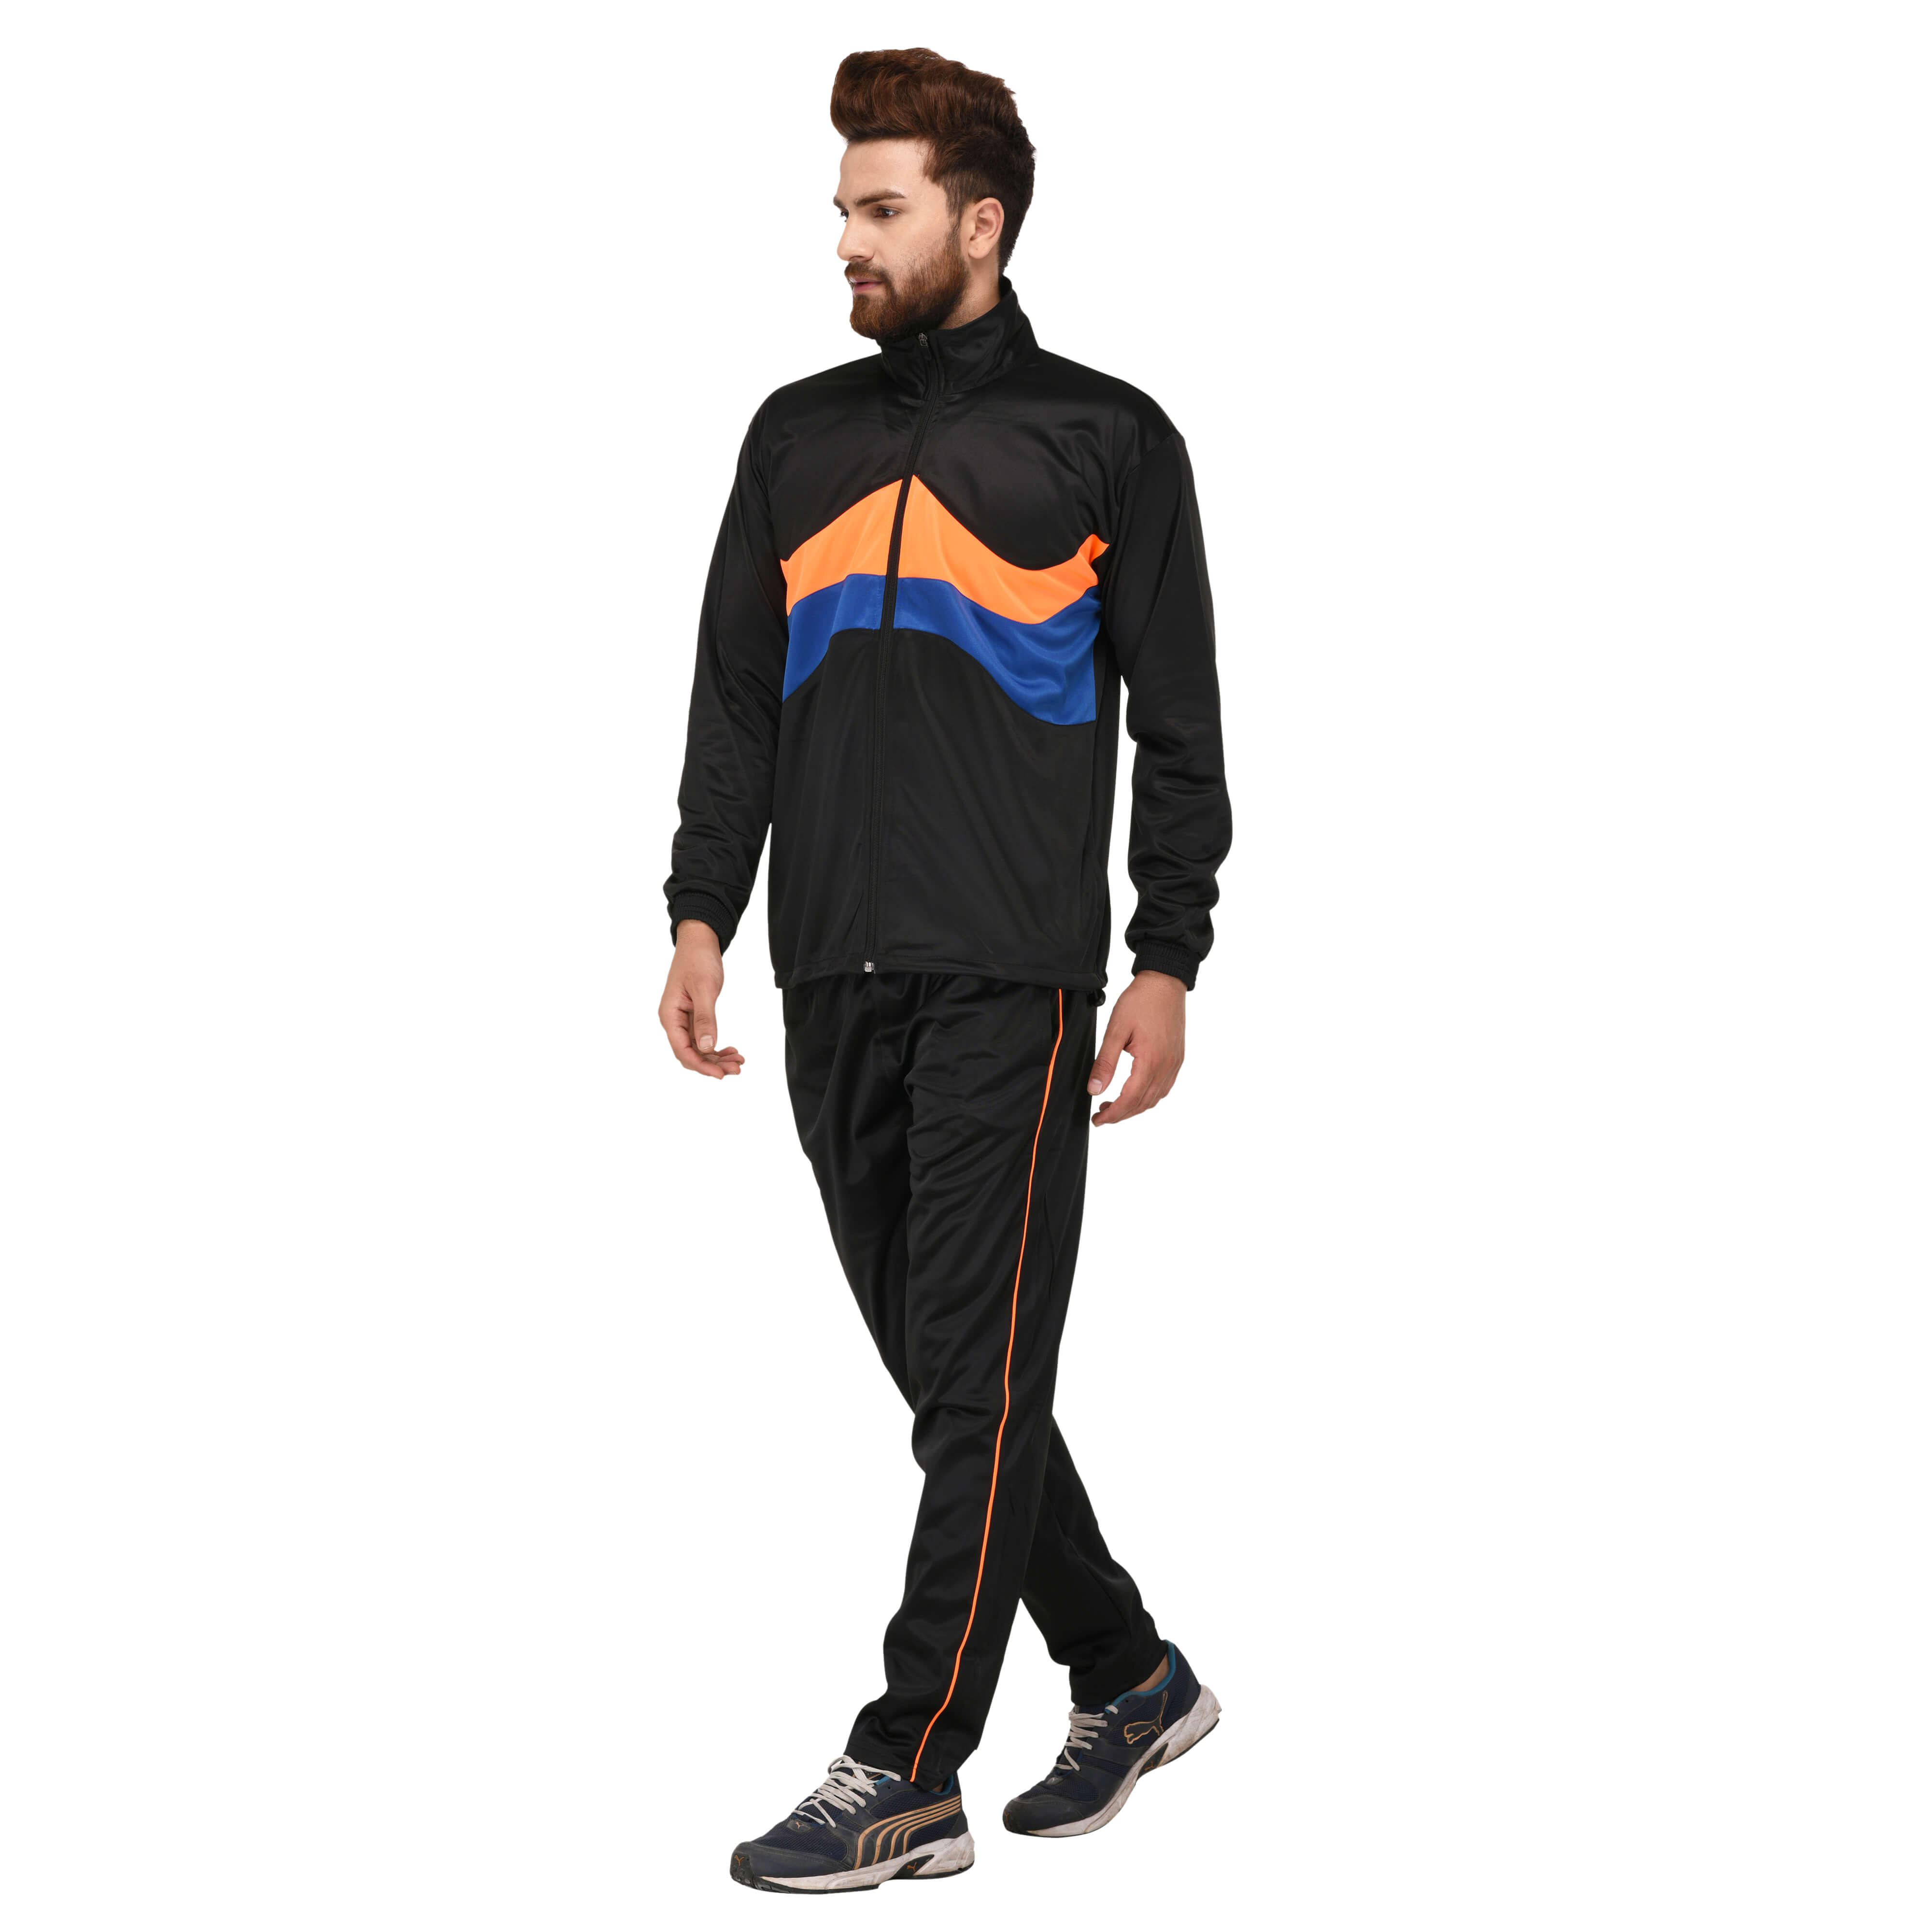 Full Tracksuit Manufacturers, Wholesale Suppliers